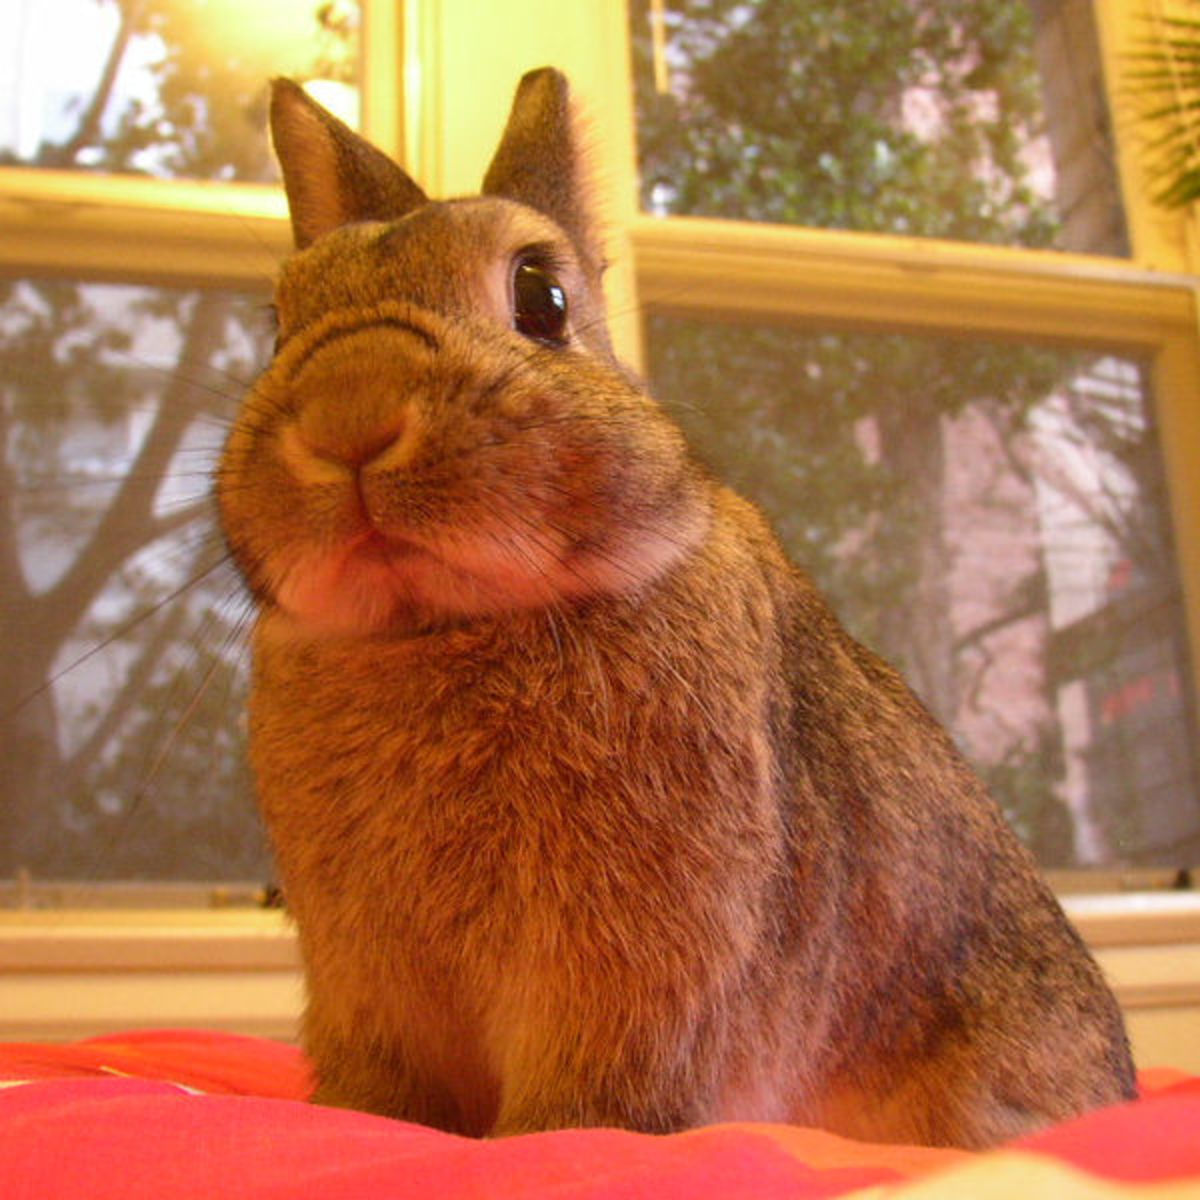 How to Help Pet Rabbits Adjust to a New Environment: How Long Does it Take to Settle a Bunny or Bunnies in a New Home?